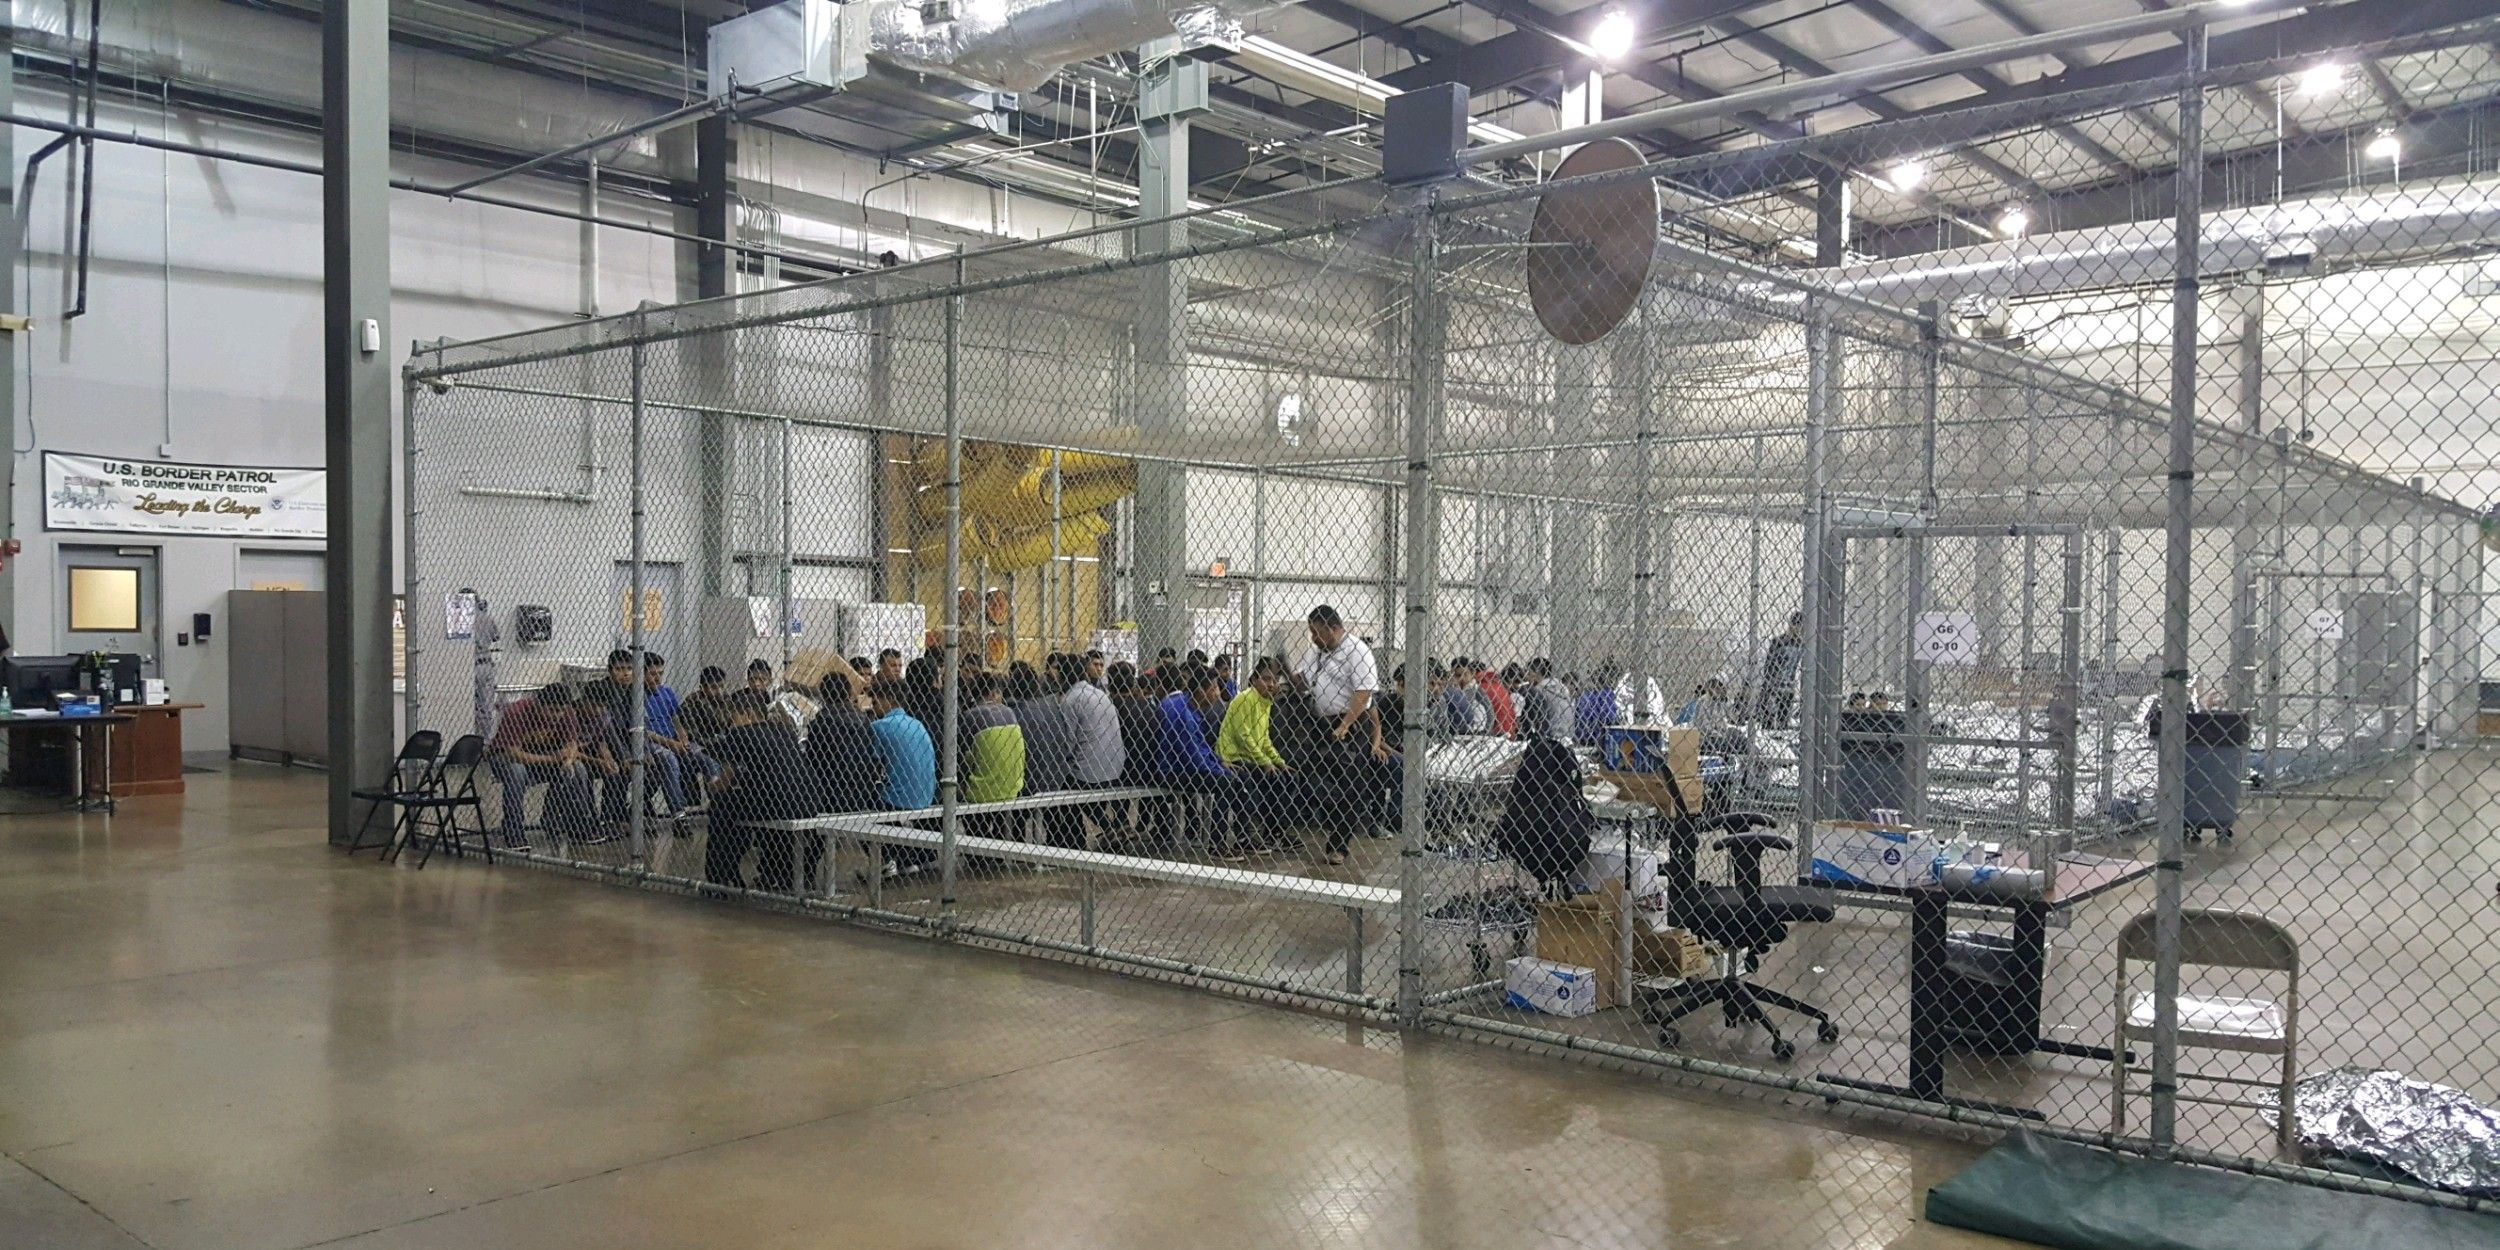 cages at border